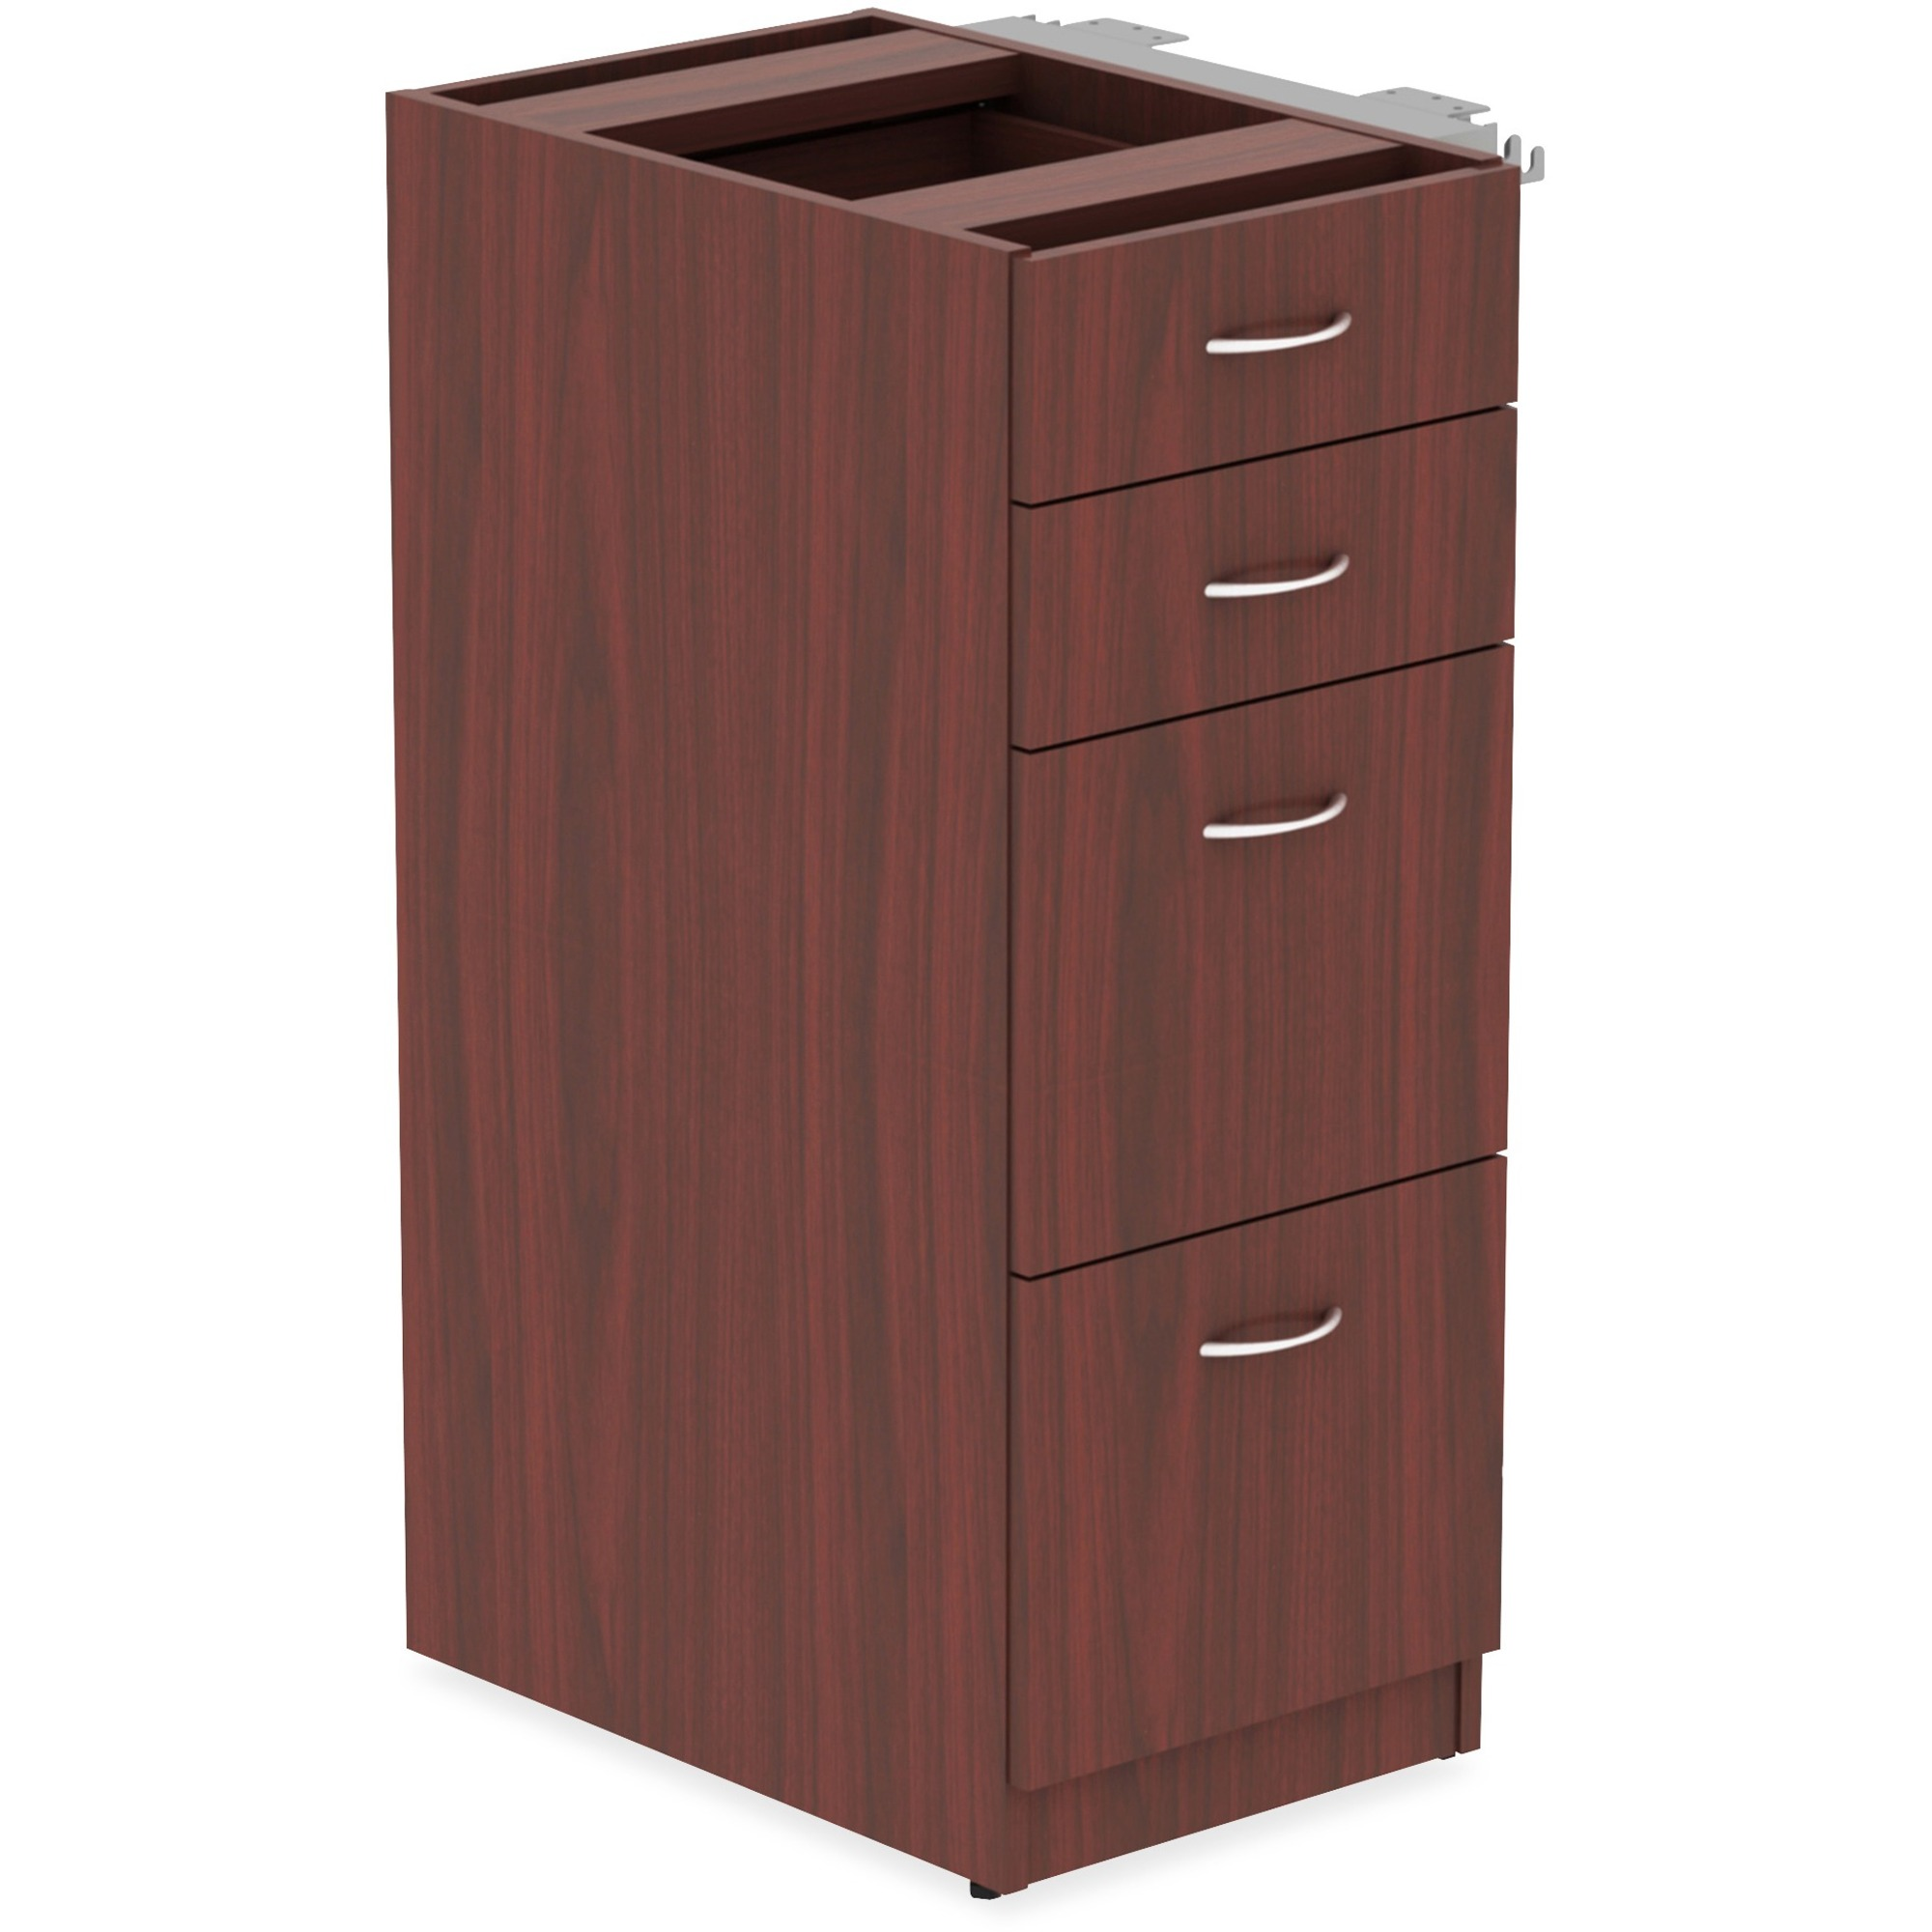 Lorell Relevance Series Mahogany Laminate Office Furniture - 15.5 X 23.6 X  40.4 - 4 X File Drawer(S), Box Drawer(S) - Material: Metal Frame - Finish:  ...